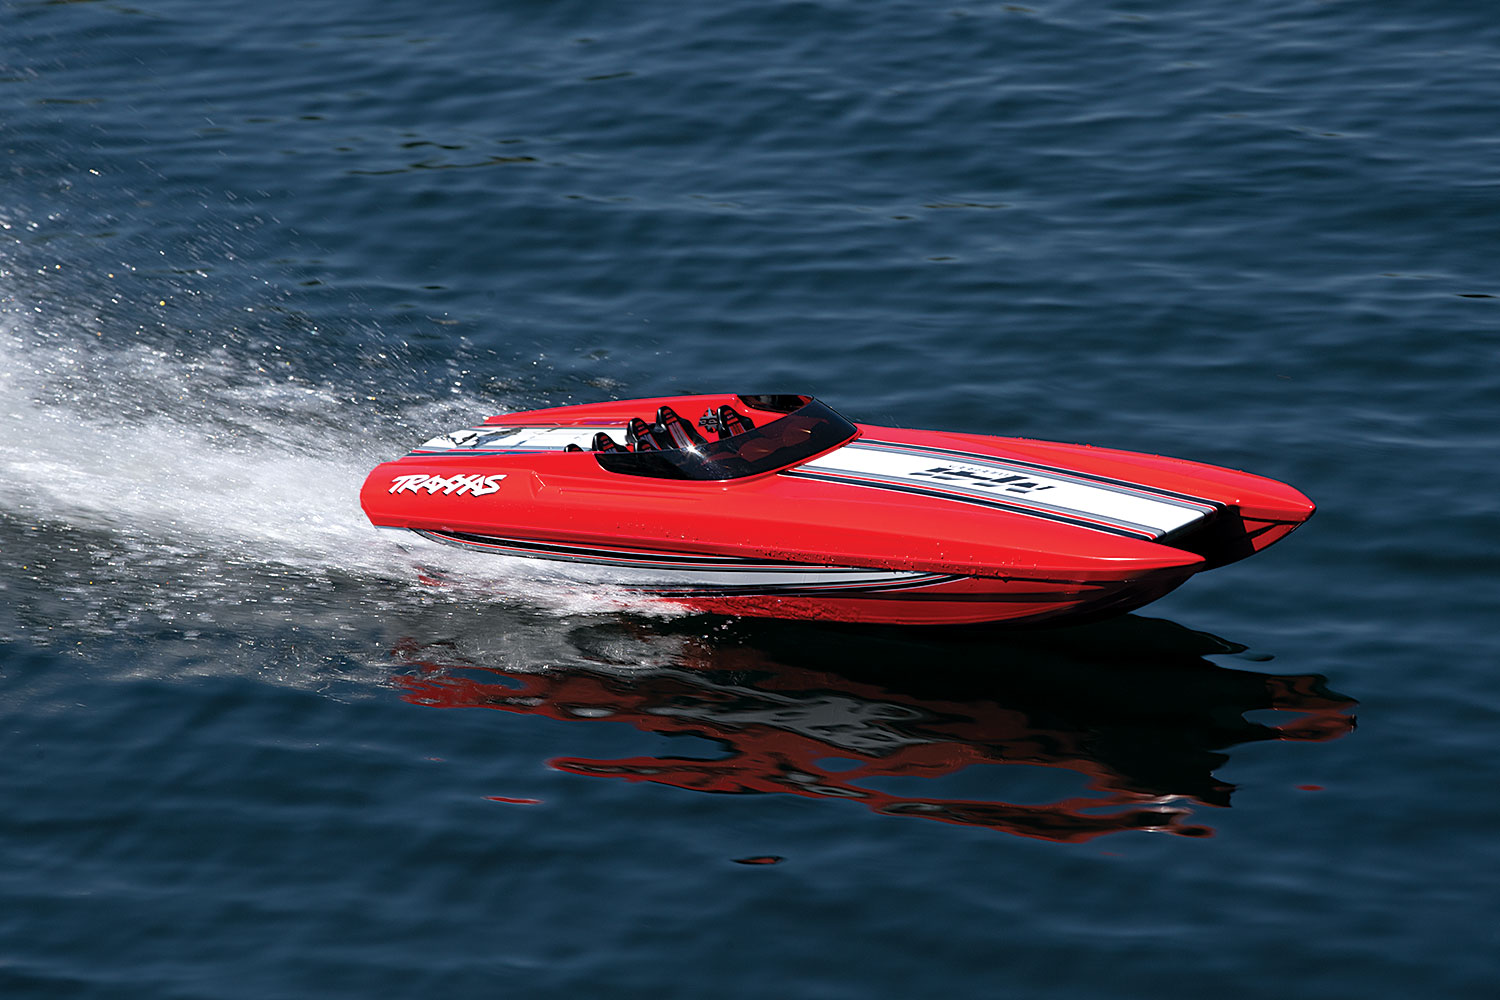 Traxxas Dcb M41 Widebody 40 Catamaran Race Boat Red